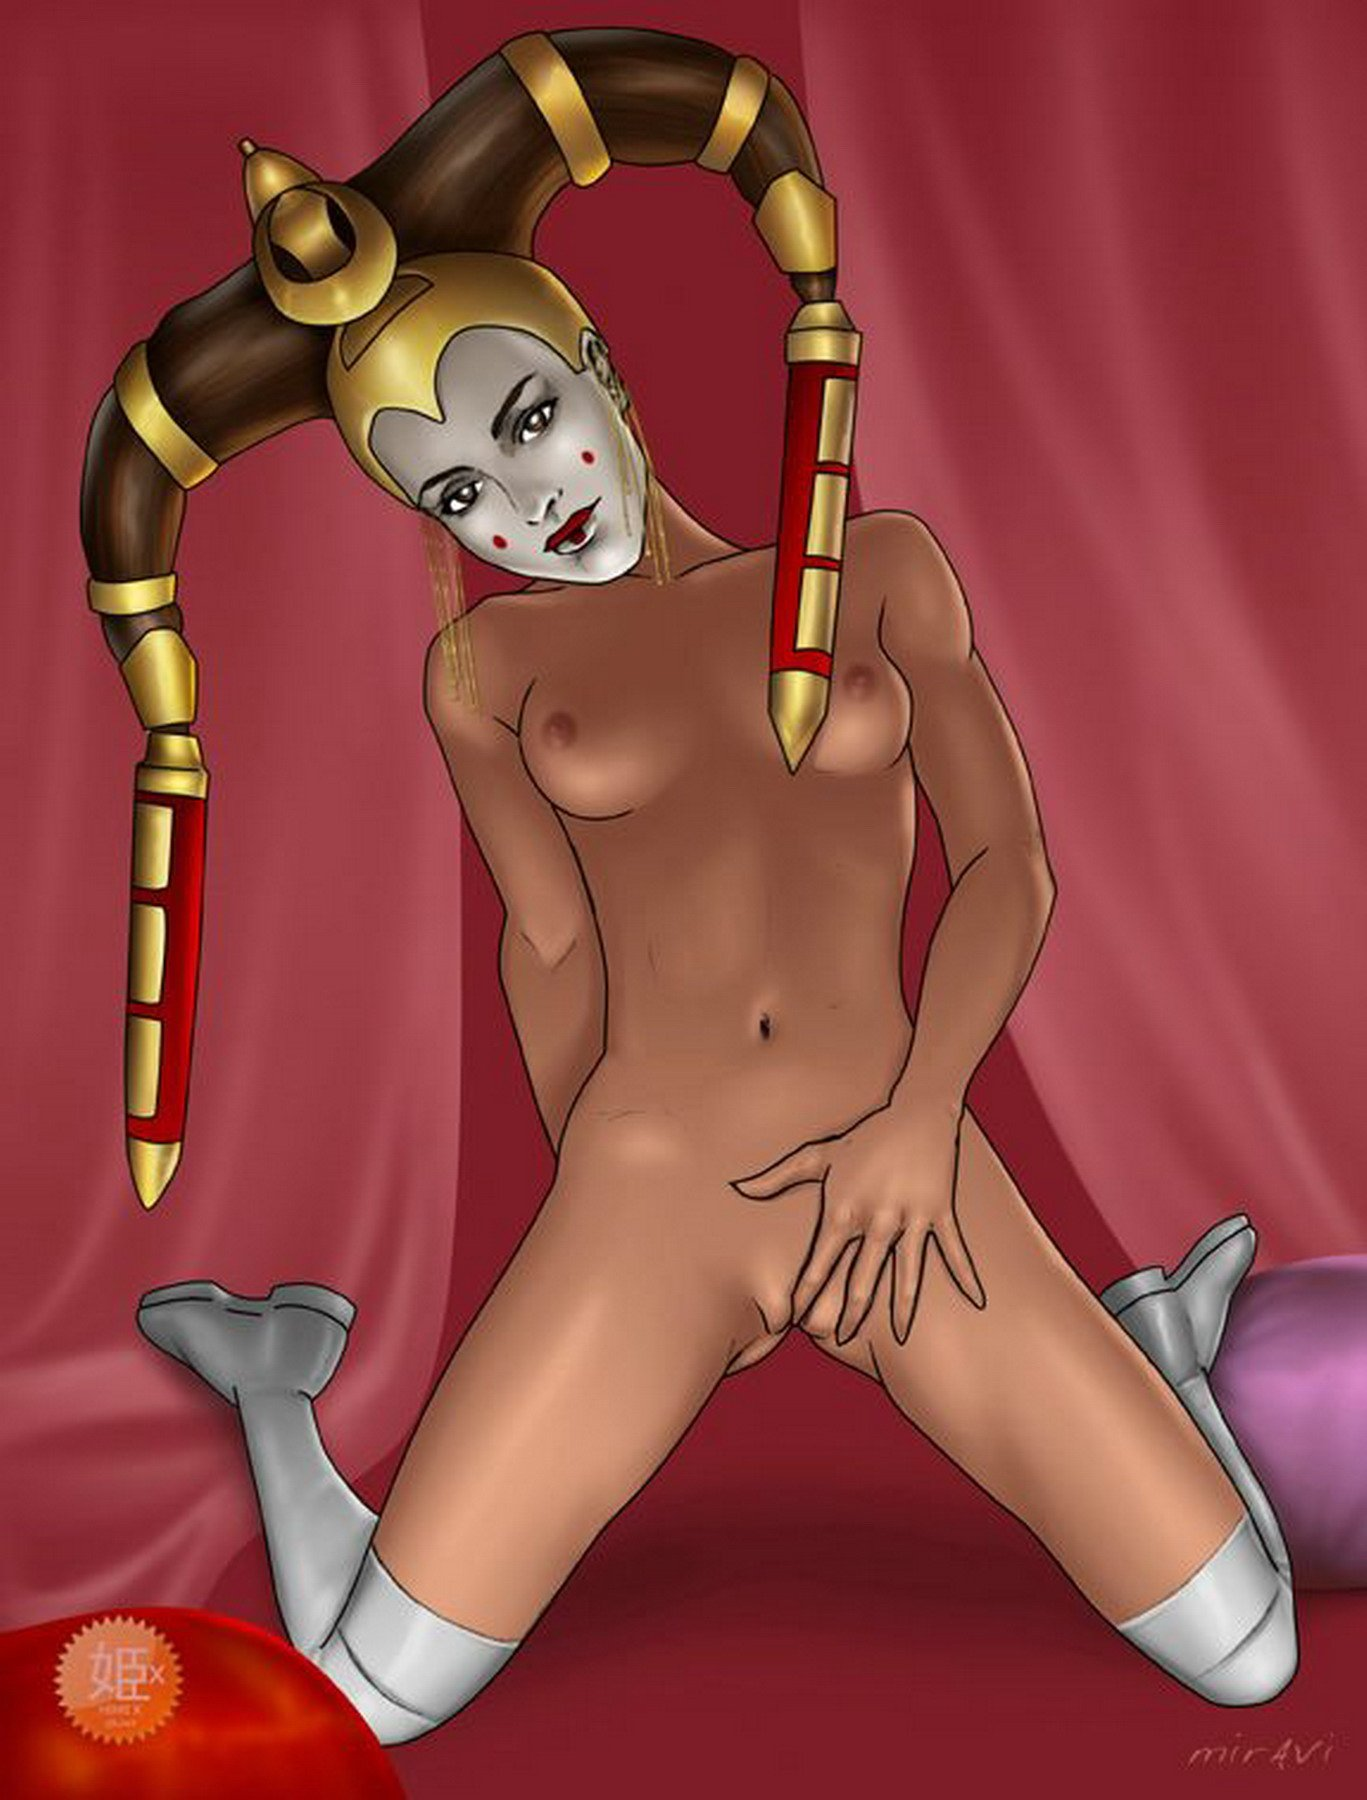 Star wars porn queen amidala nude photo